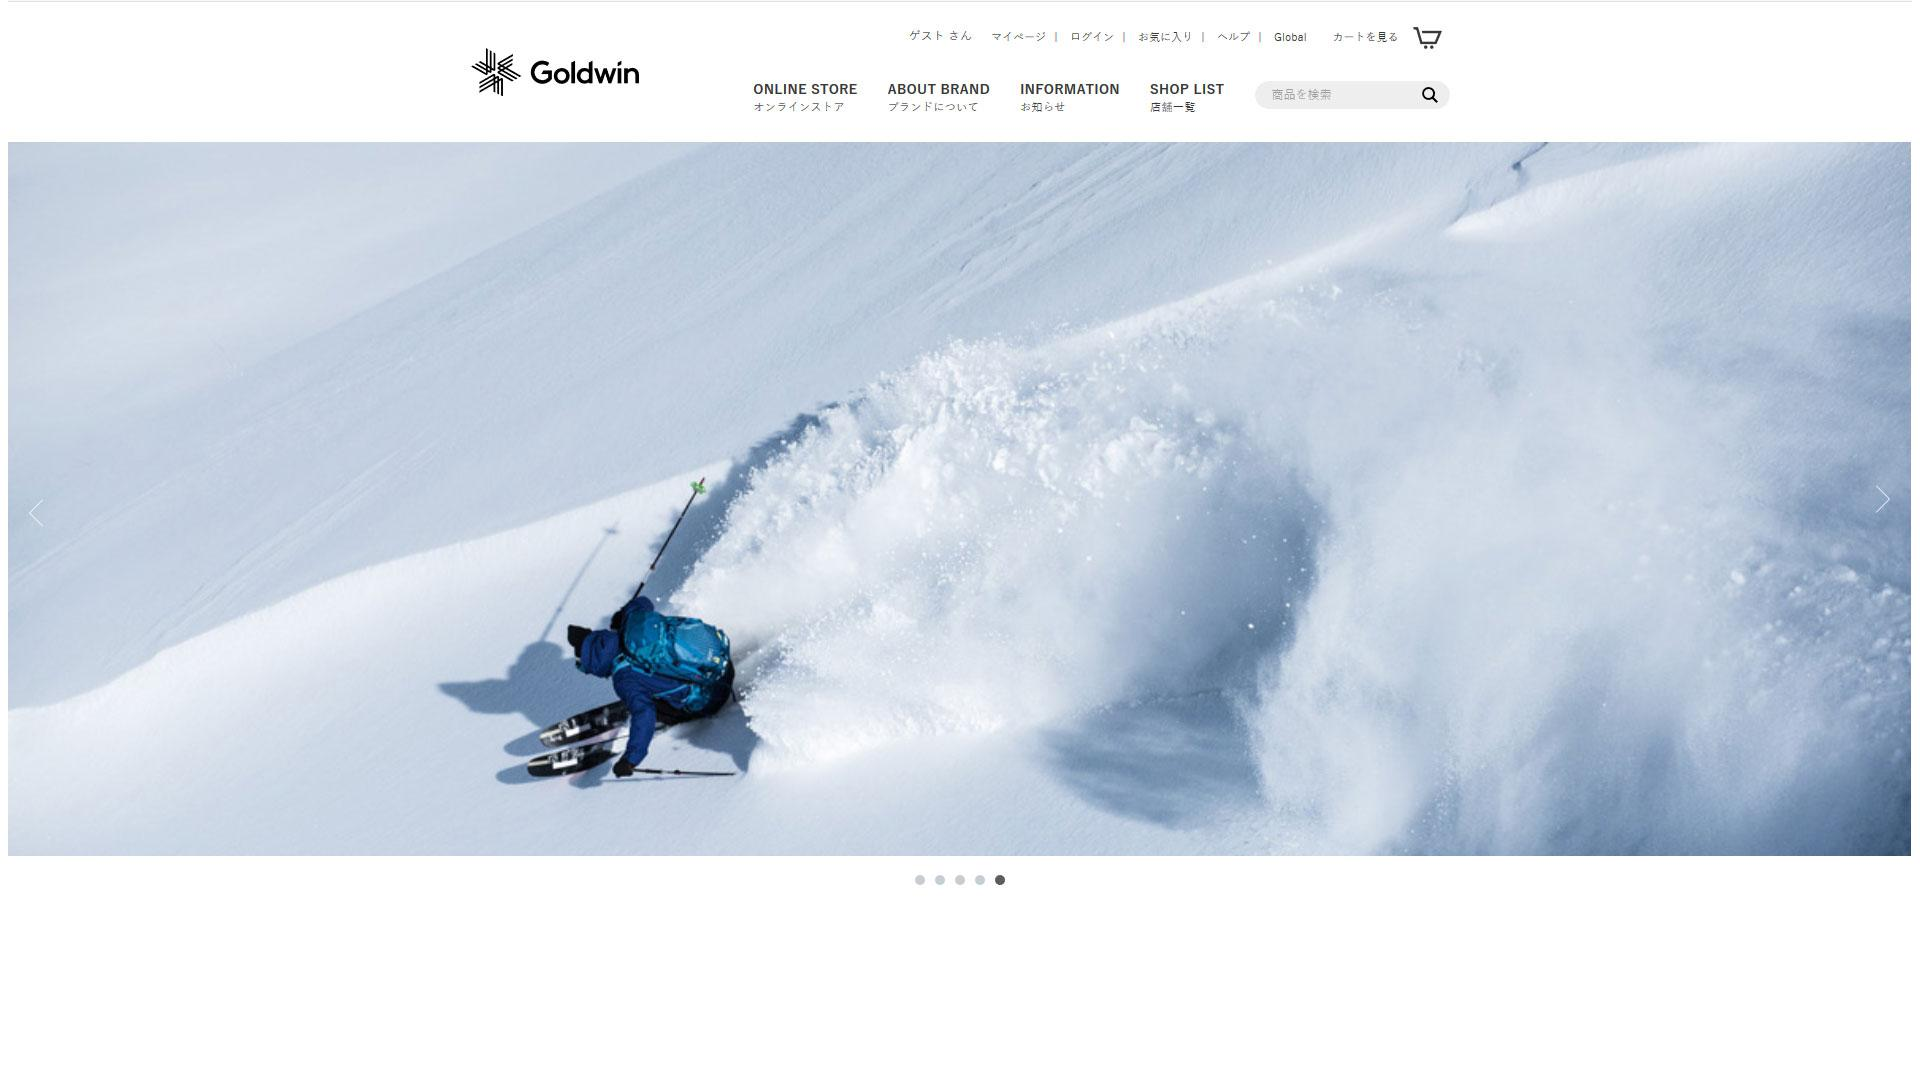 GOLDWIN Website Renewal